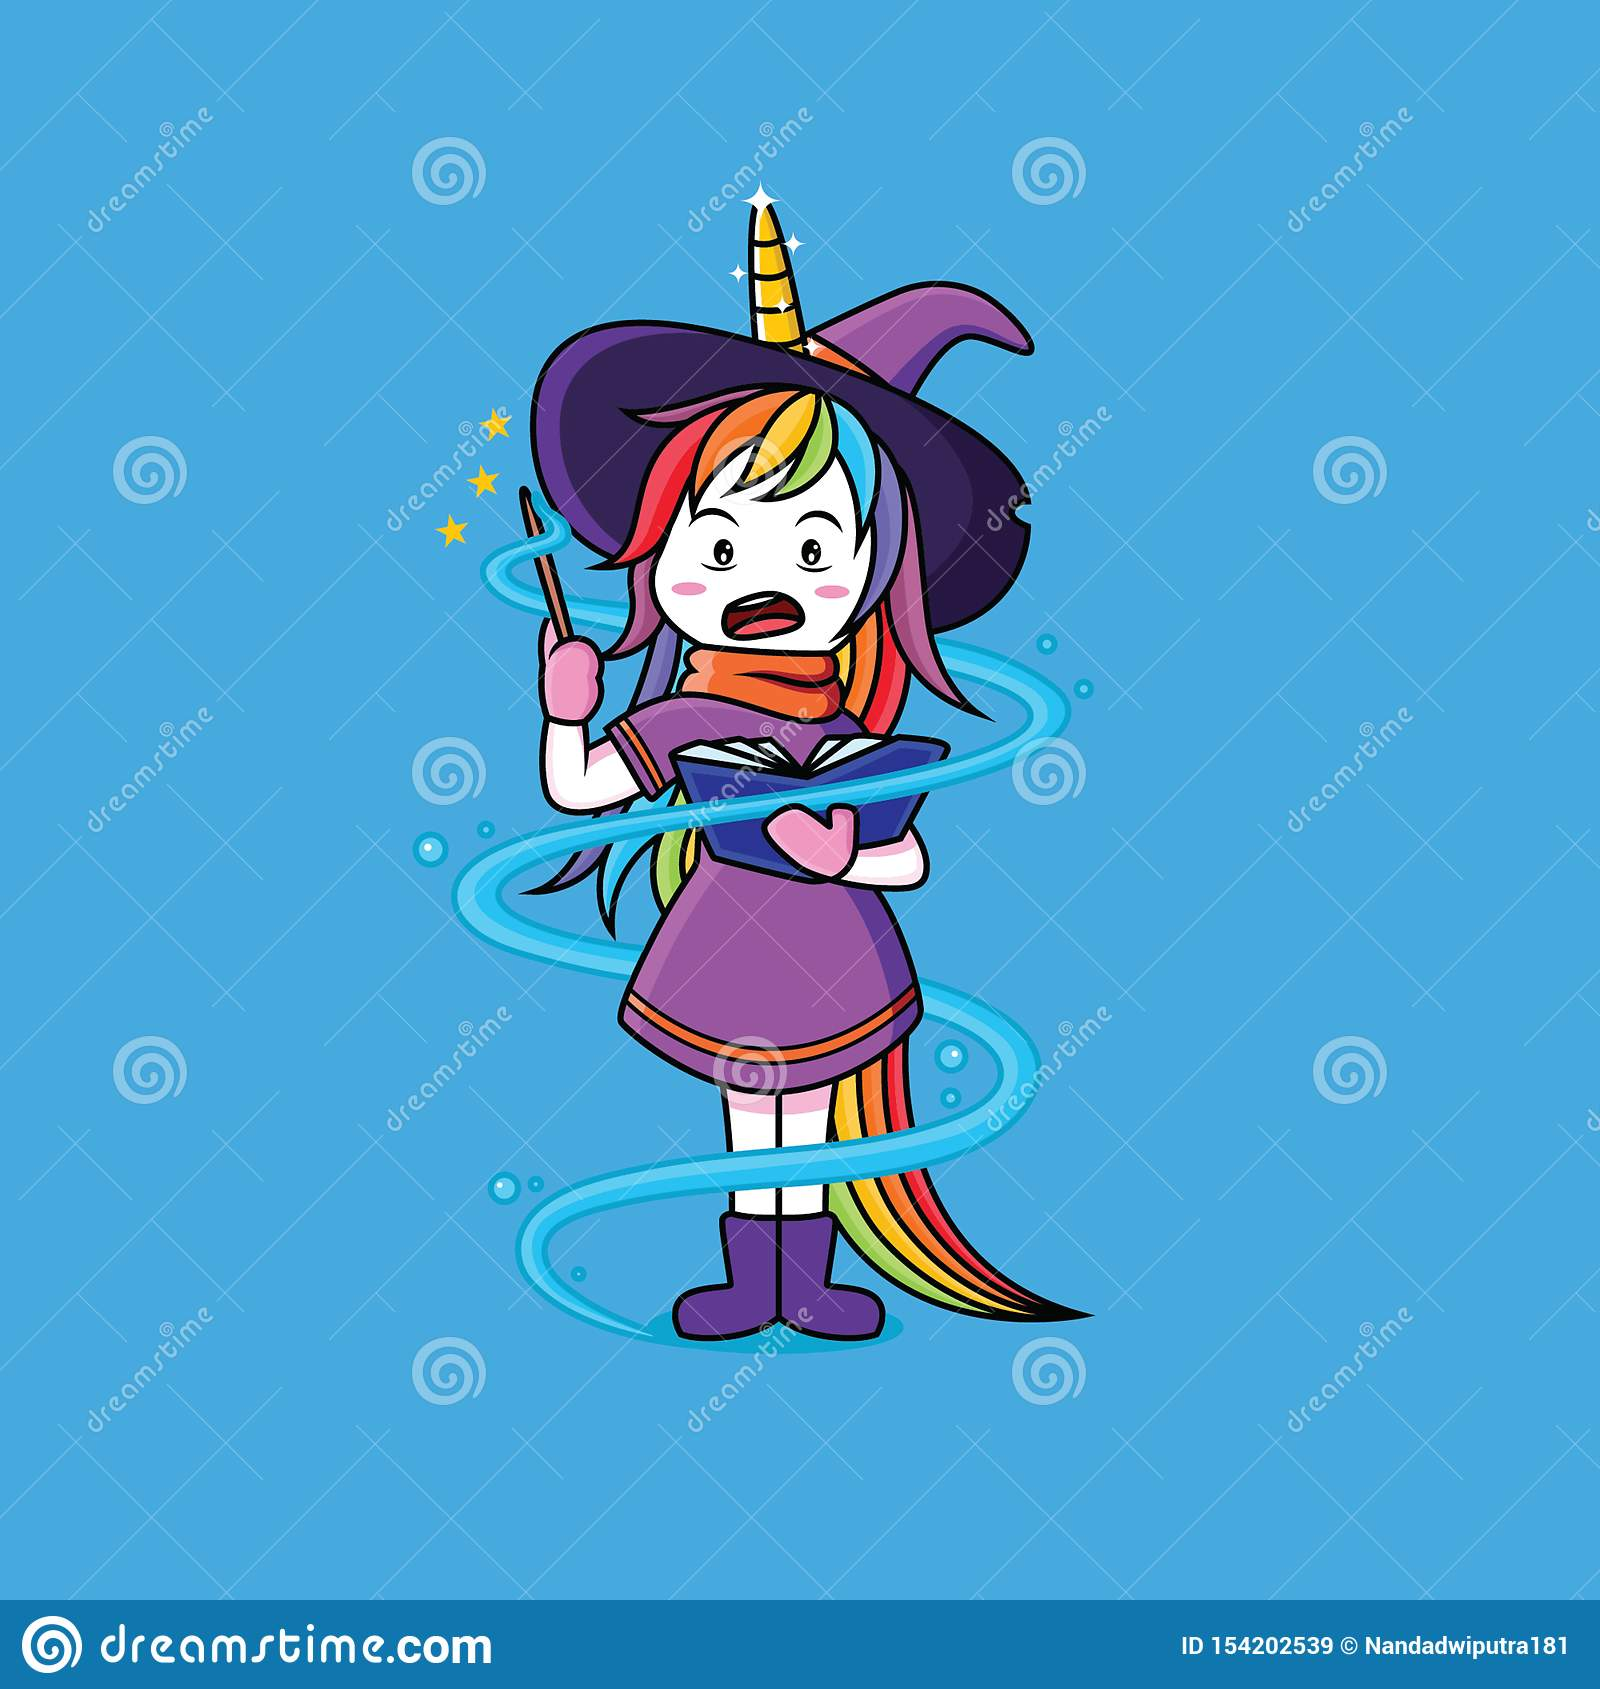 Witches Unicorn are learning magic wands